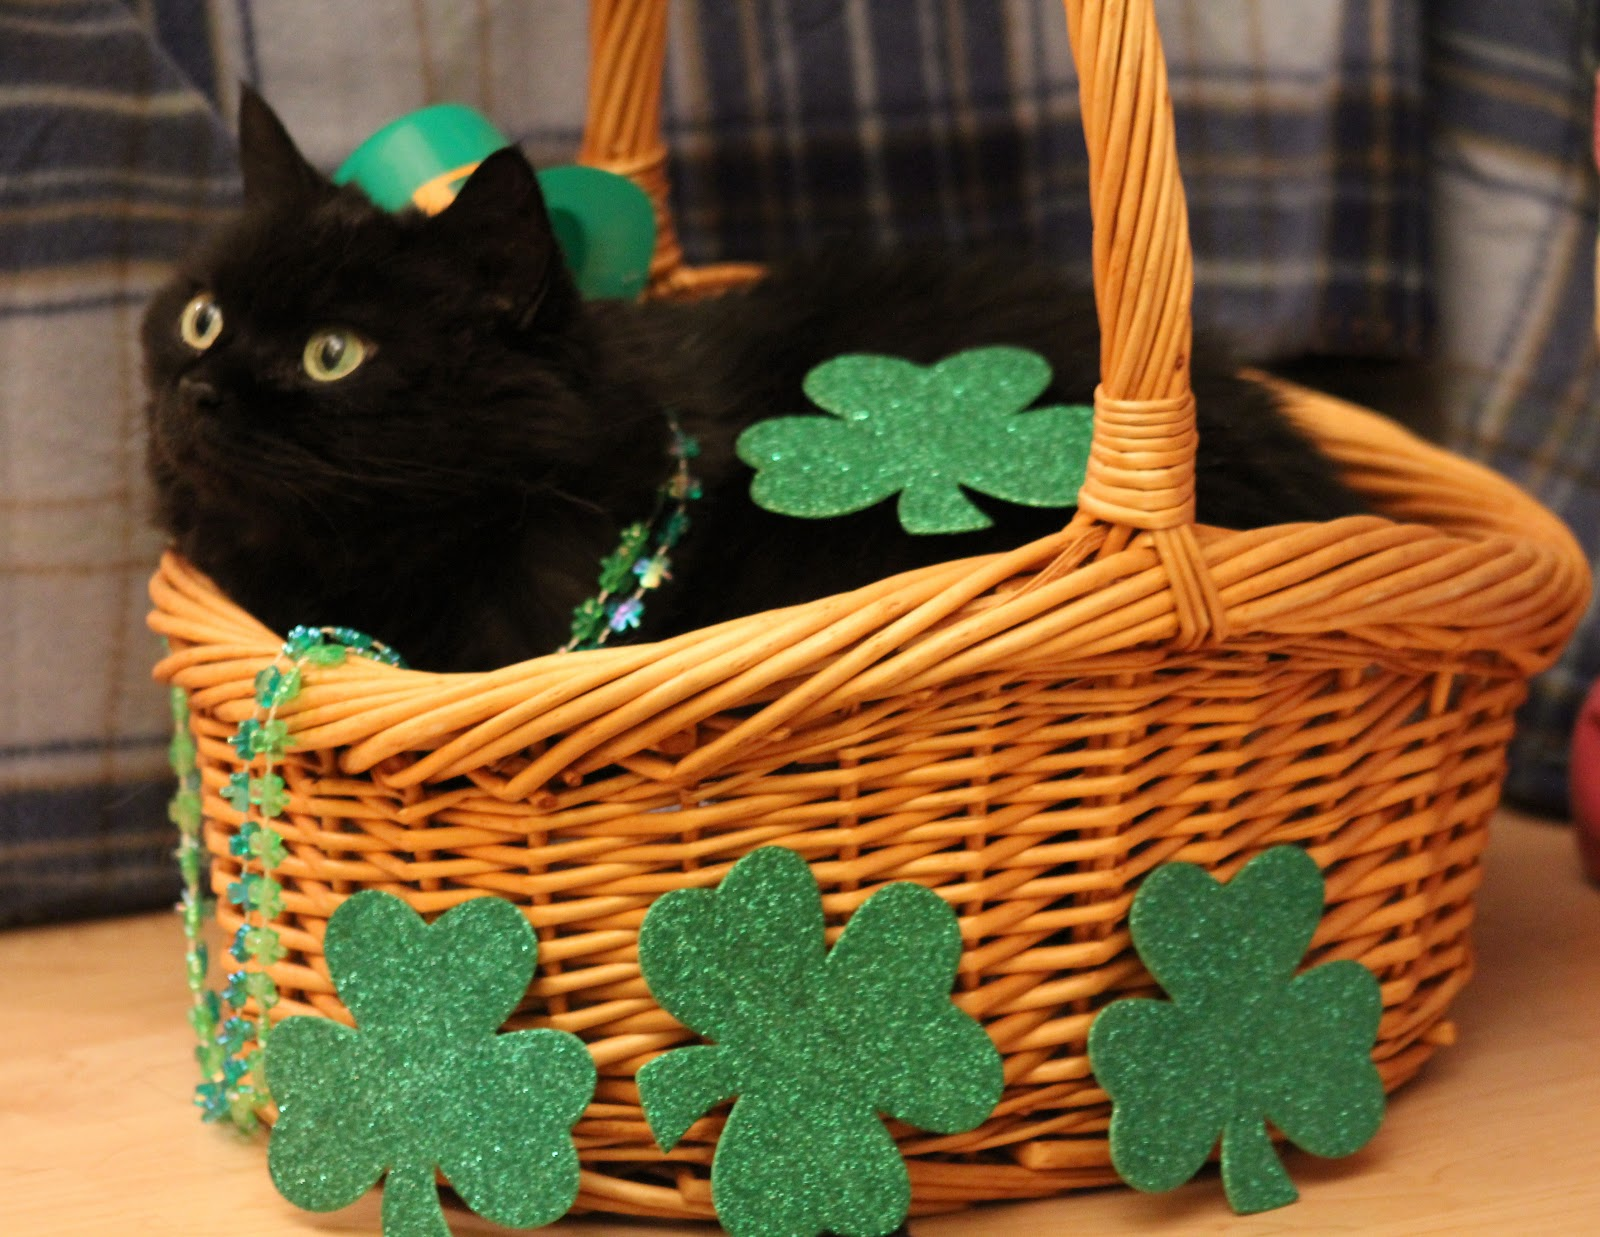 St Patricks Day Cat Wallpaper 364SI4Ejpg   Picseriocom 1600x1237